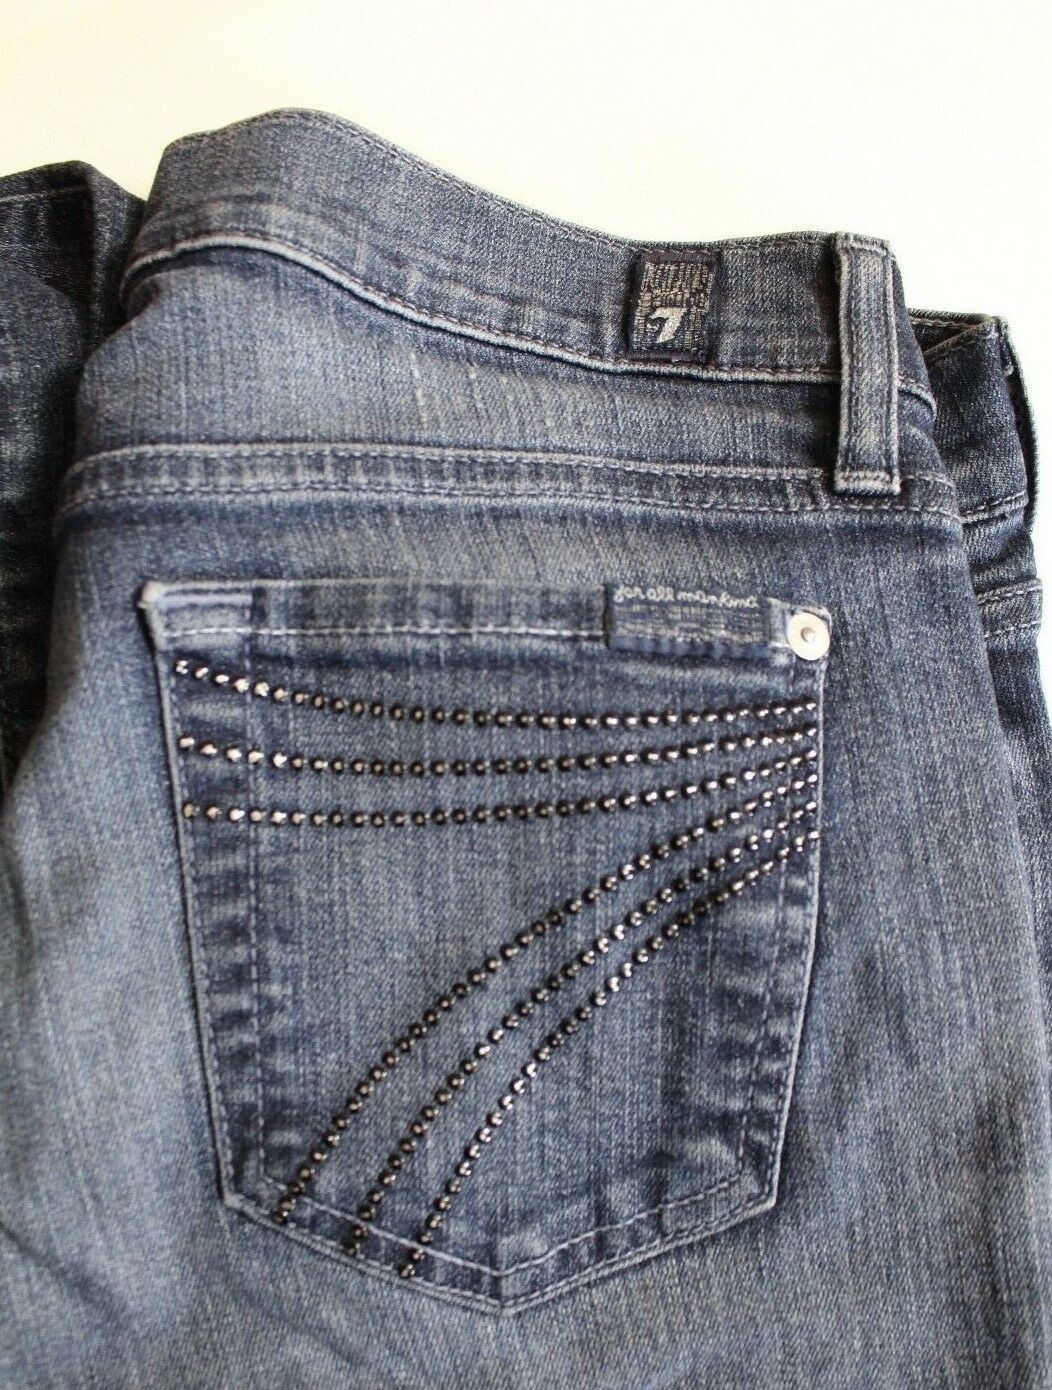 7 For All Mankind Womens Dojo Jeans Size 26 Sequined